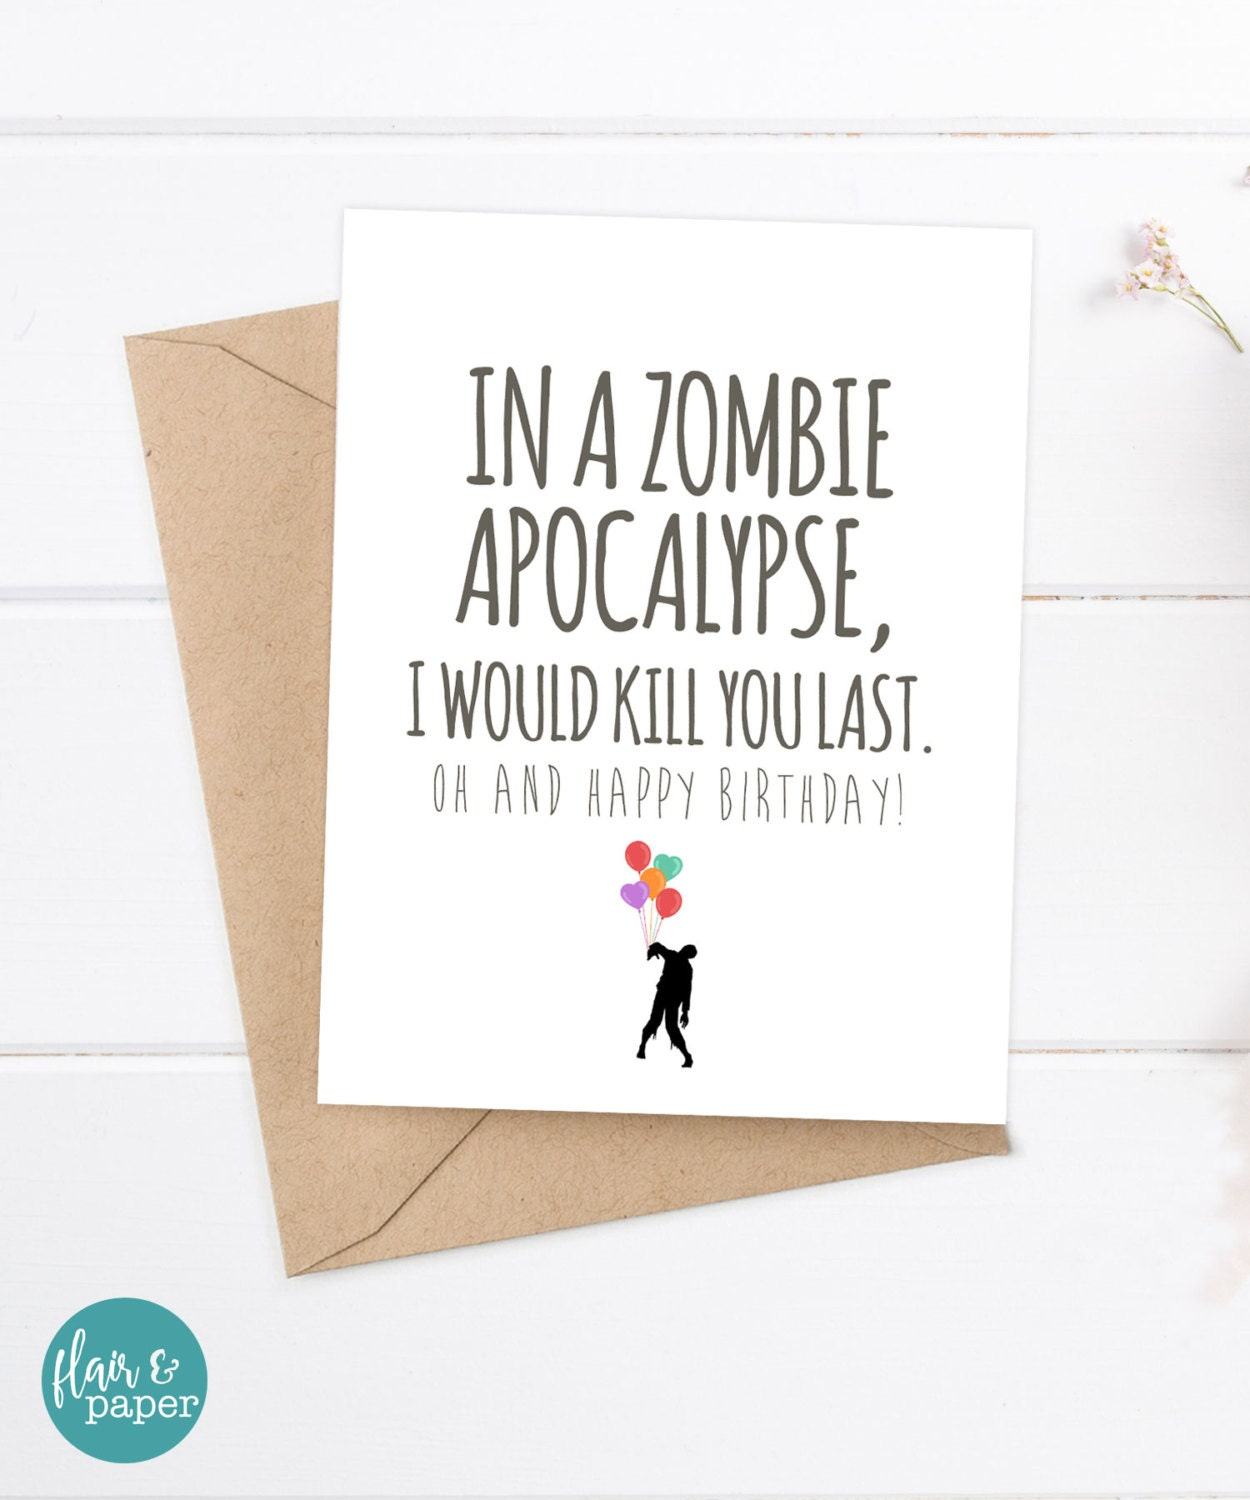 Birthday Card Boyfriend Birthday Card For Him Birthday: Boyfriend Card Funny Birthday Card Zombie Card Snarky